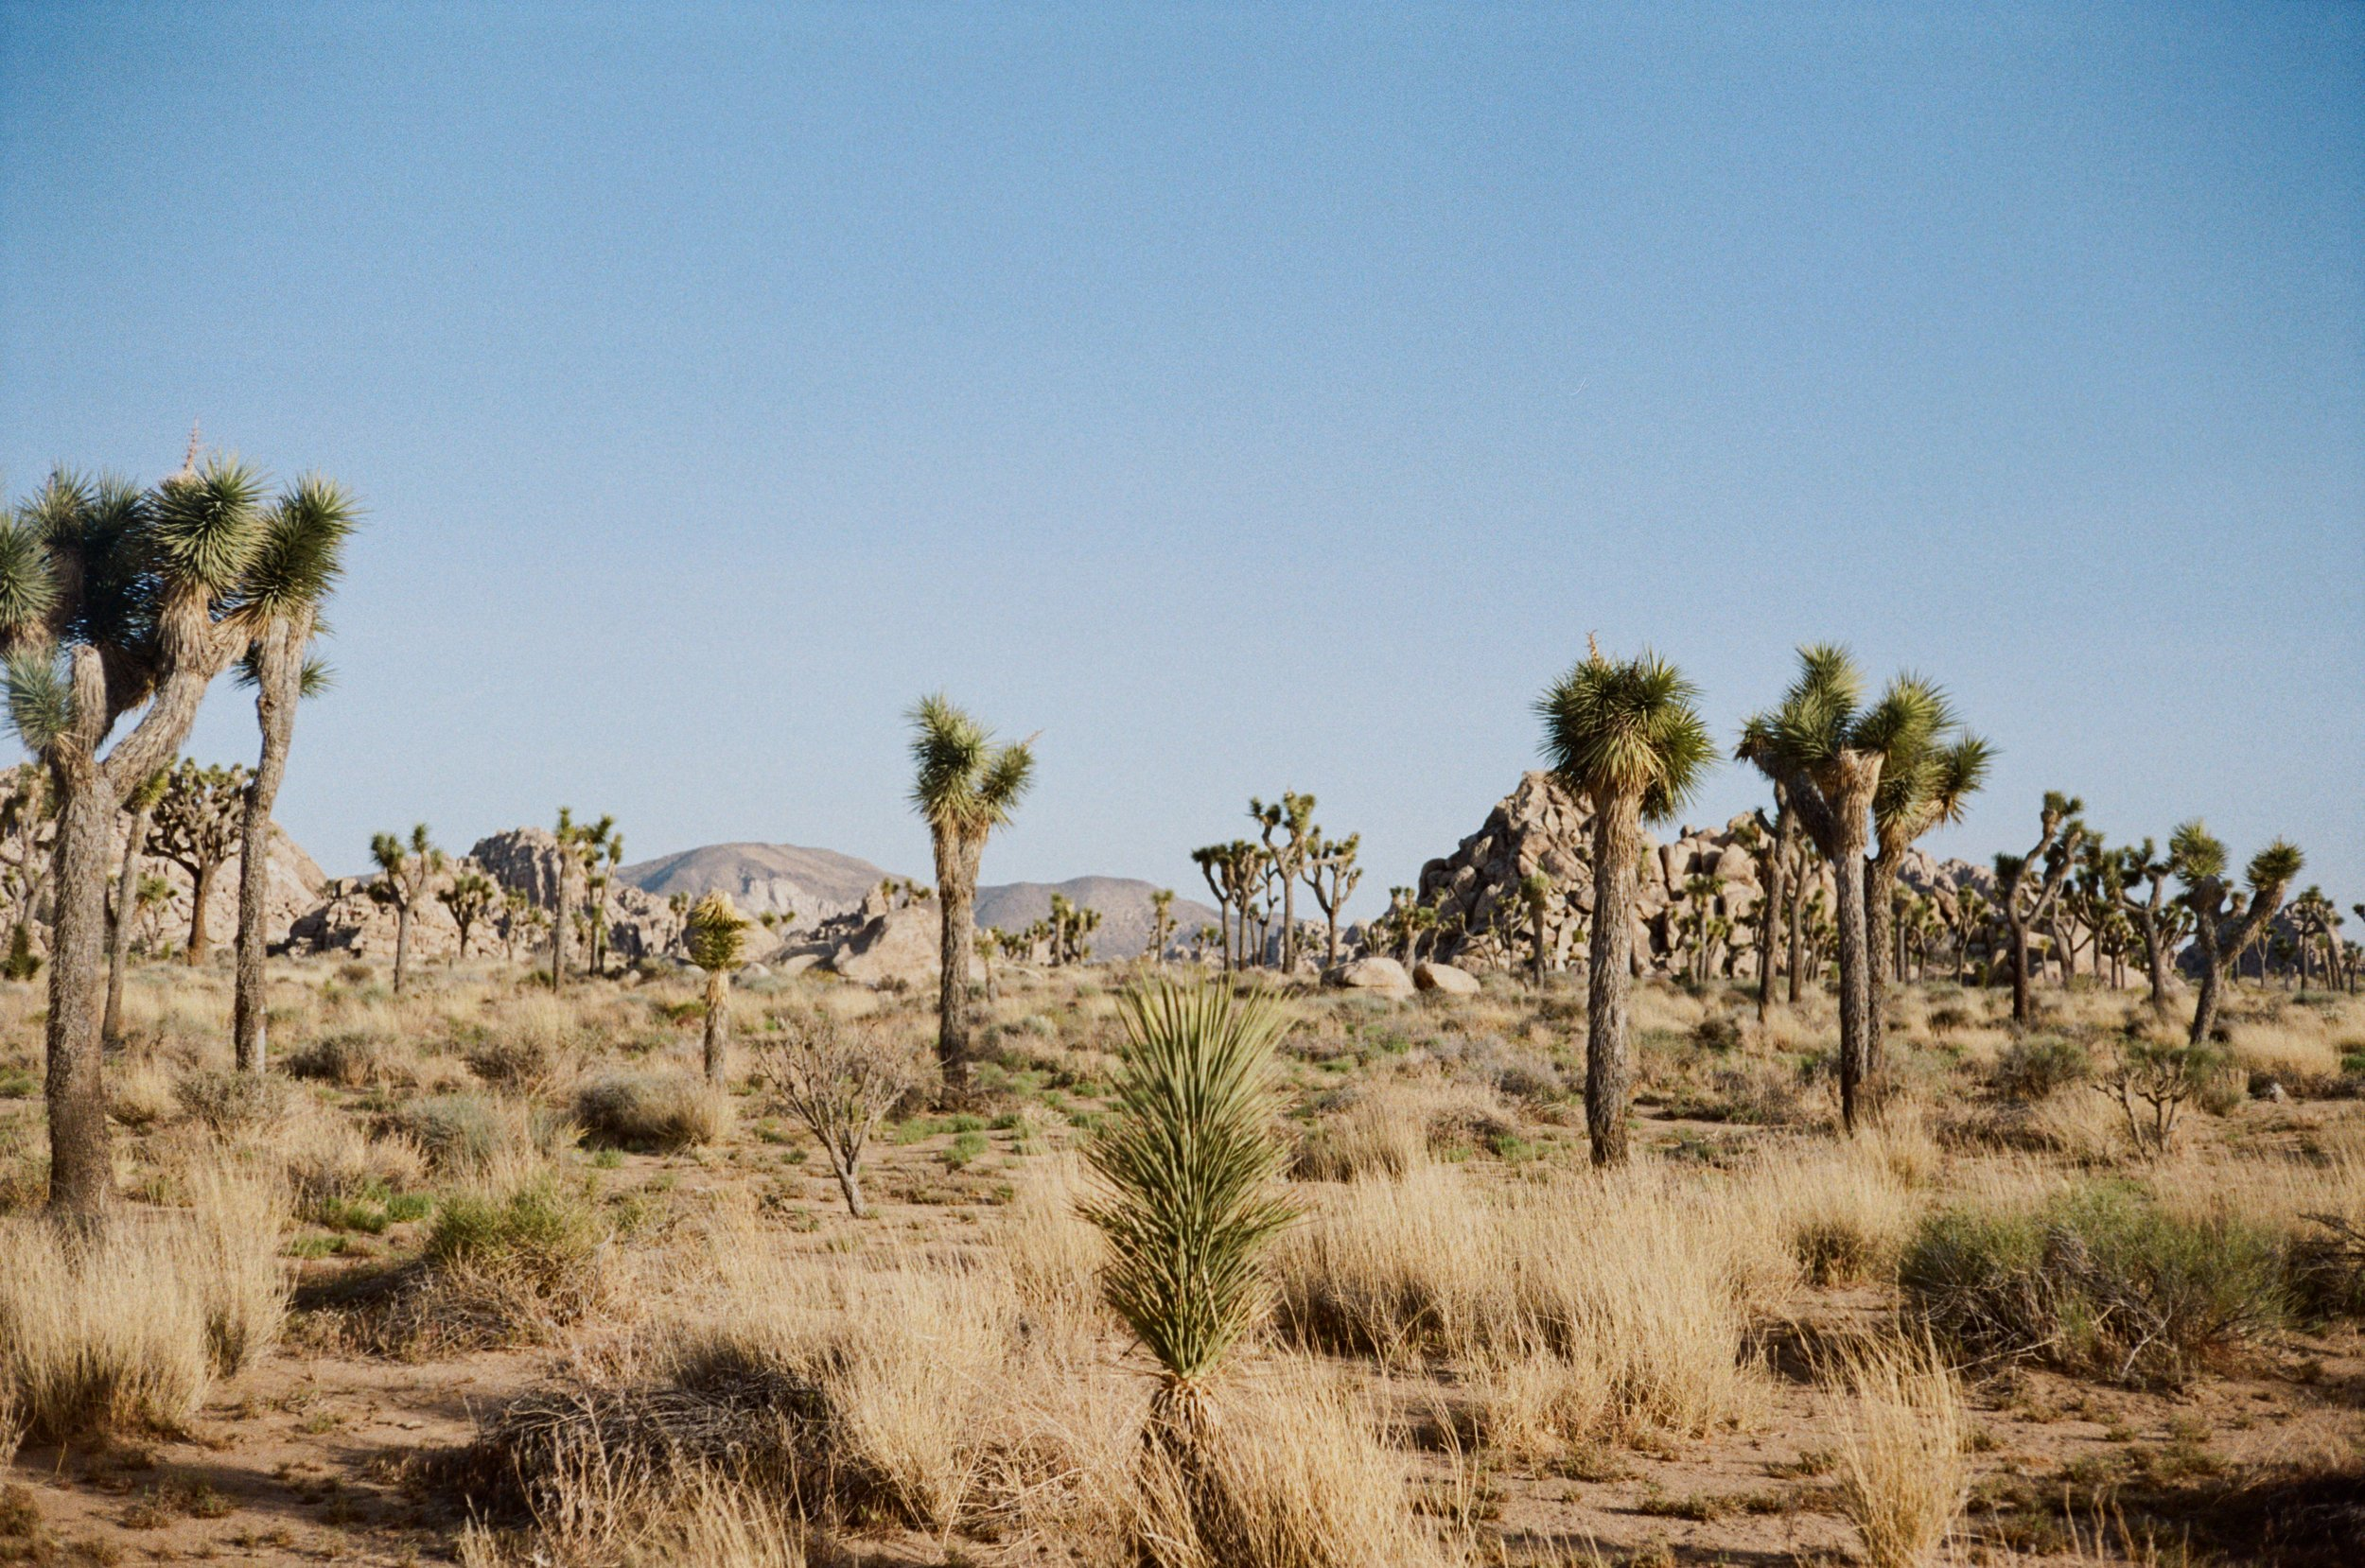 Joshua Tree, CA on Kodak 200 35 mm film